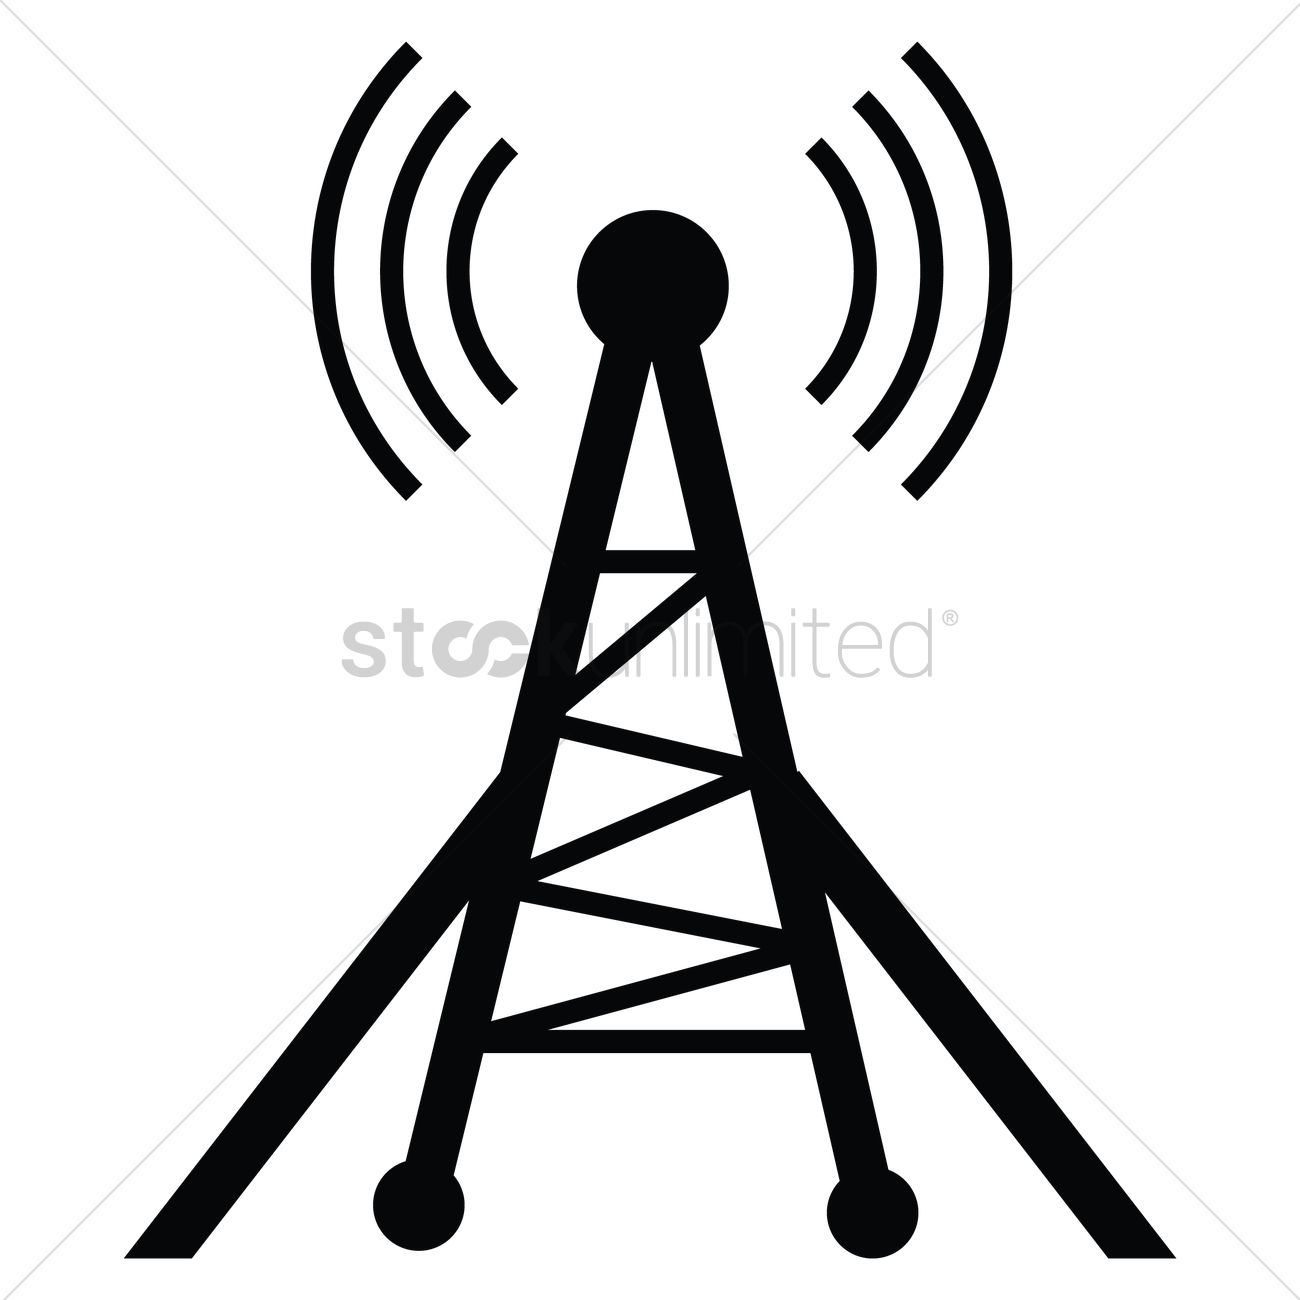 silhouette of radio tower vector image 1936556 stockunlimited rh stockunlimited com  radio tower clip art free